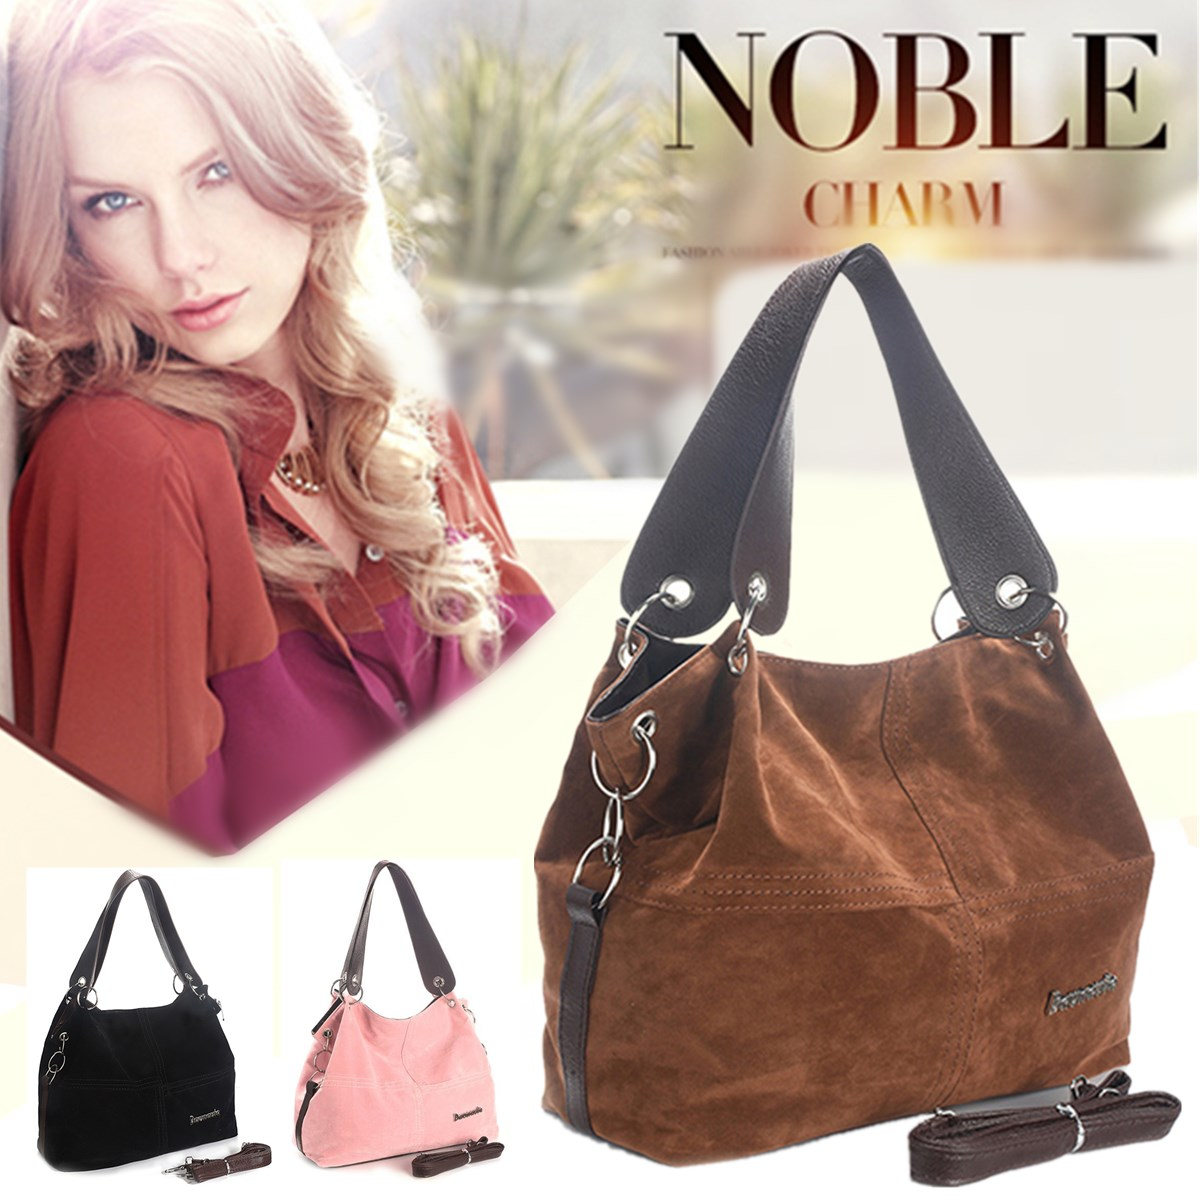 Vintage Women Handbag Female Suede Leather Bags Shoulder Bag Crossbody Bag Ladies Hobos Casual Tote Handbags Fashion